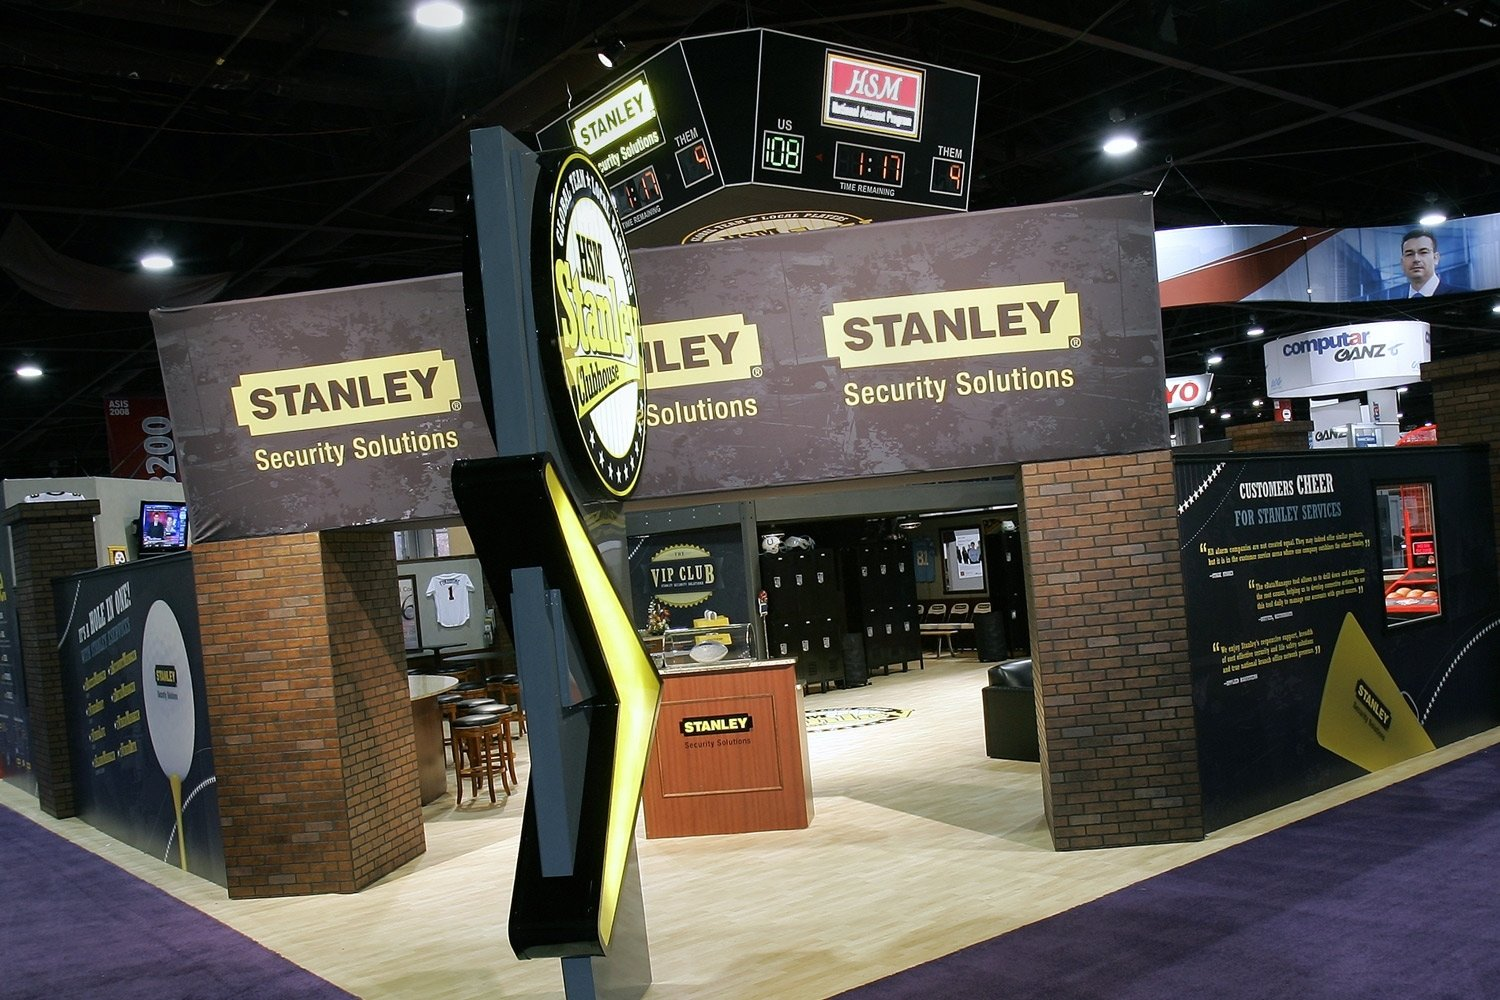 10 Fashionable Creative Trade Show Booth Ideas exhibit industry buyers guide featherlite exhibits